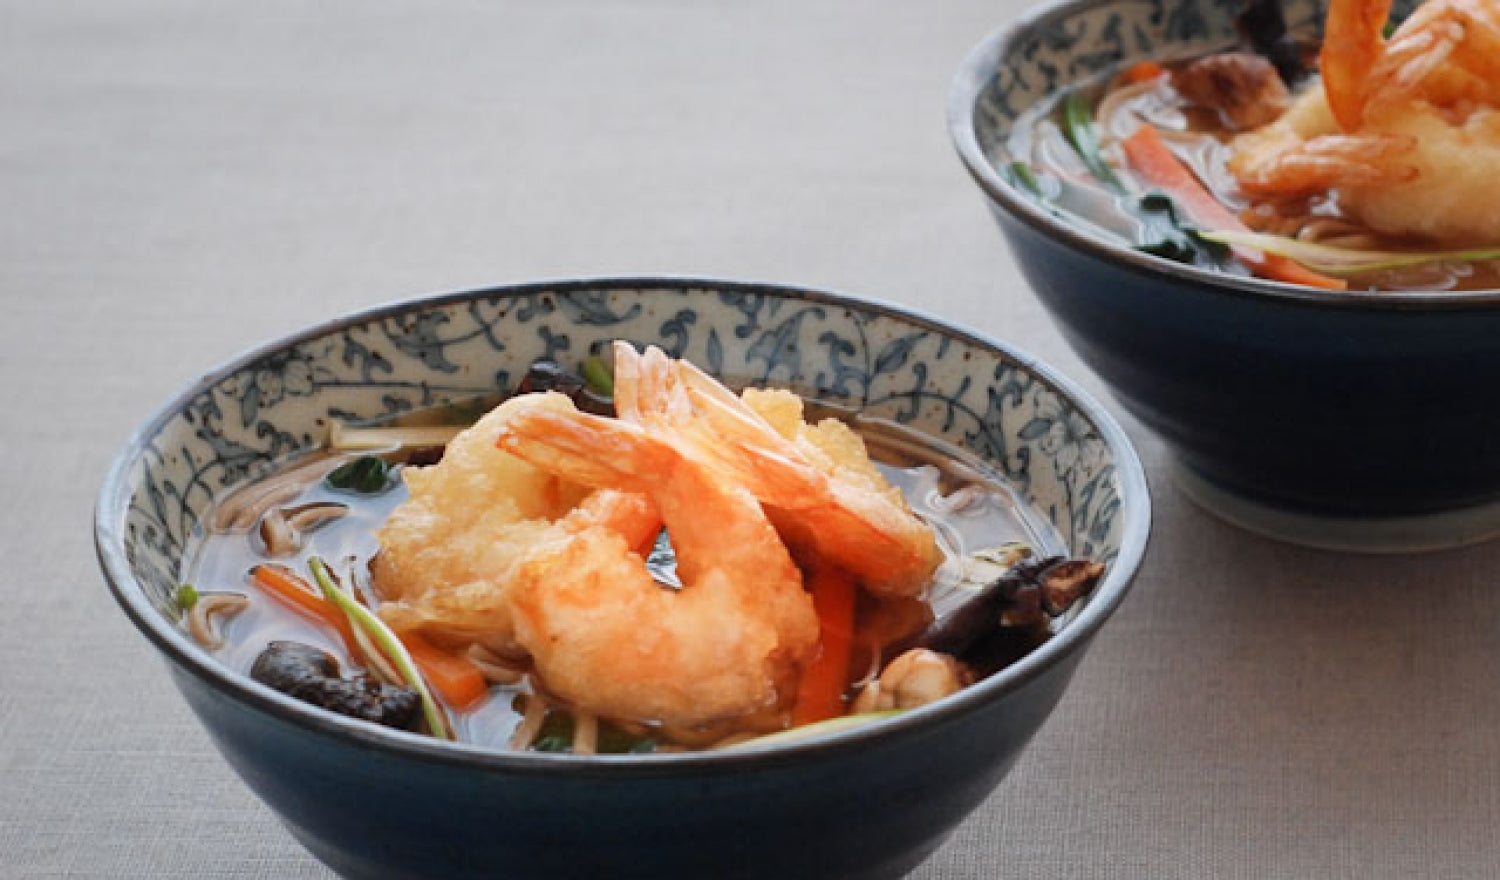 Tempura Prawn & Miso Soup Recipe With Soba Noodles